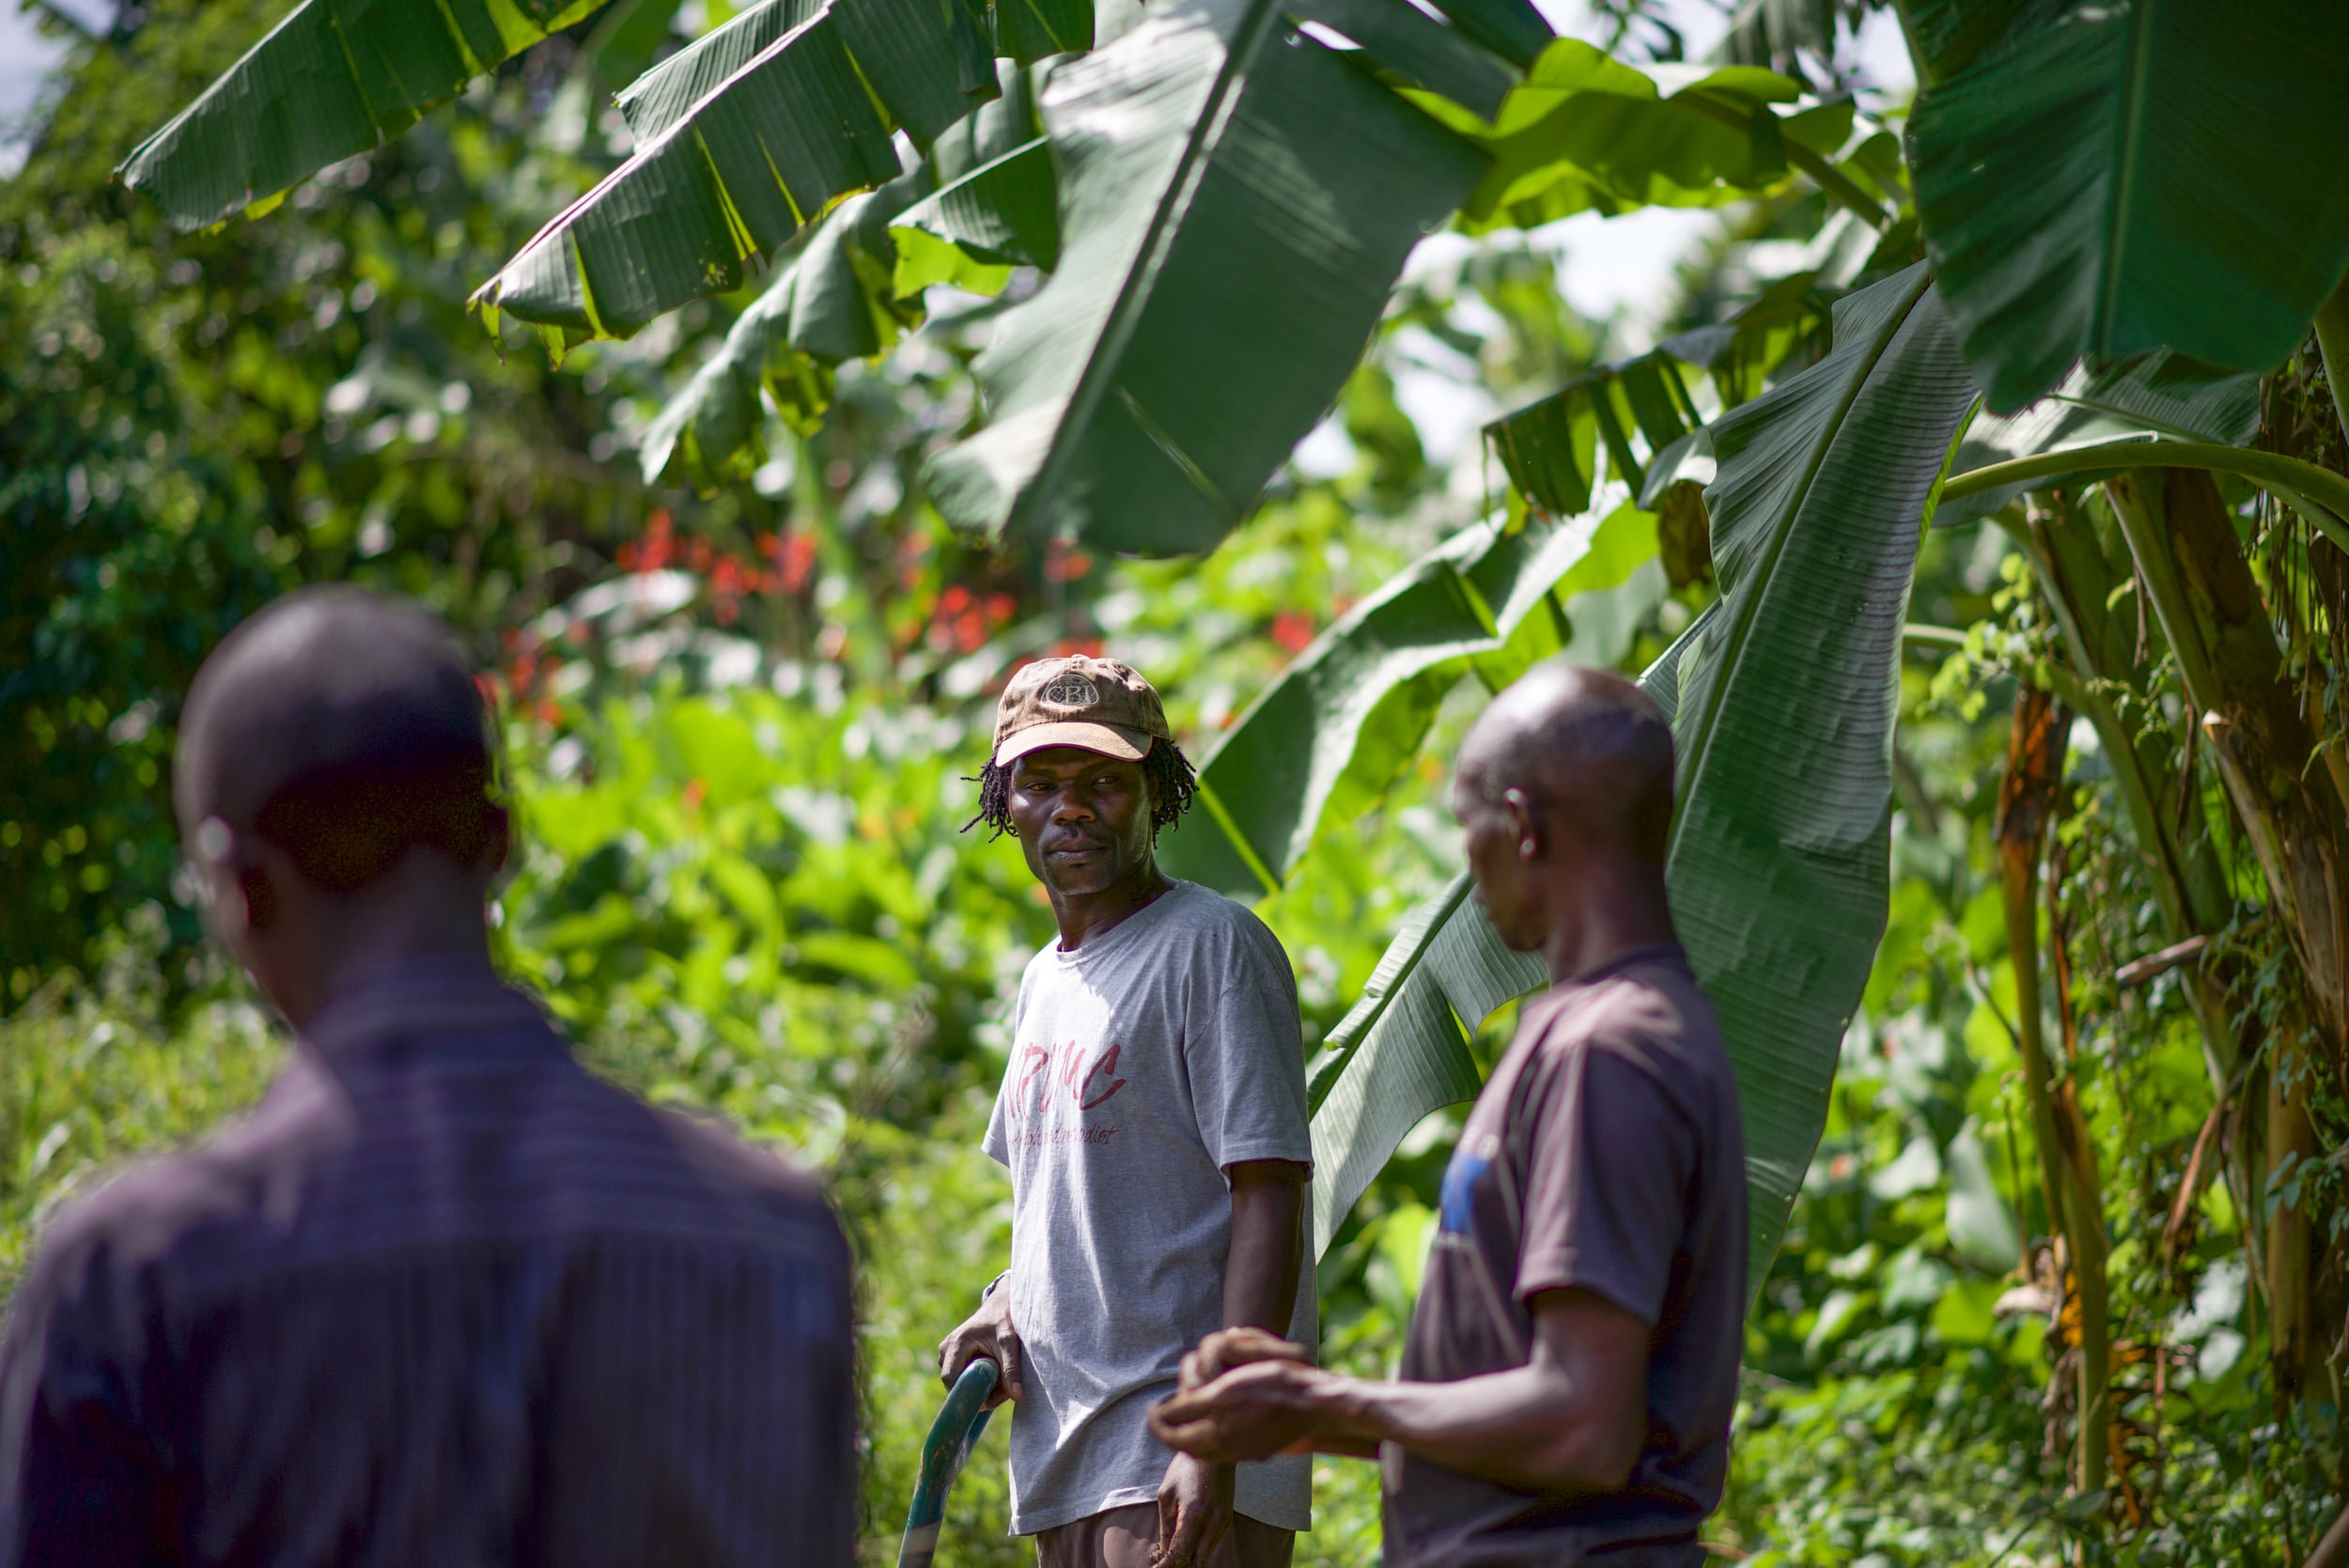 Reuben Ndwiga (center) has transformed his home garden in Kenya, and has trained dozens of neighbors in the methods he's learned. His relocation to Uganda will help our team immensely.